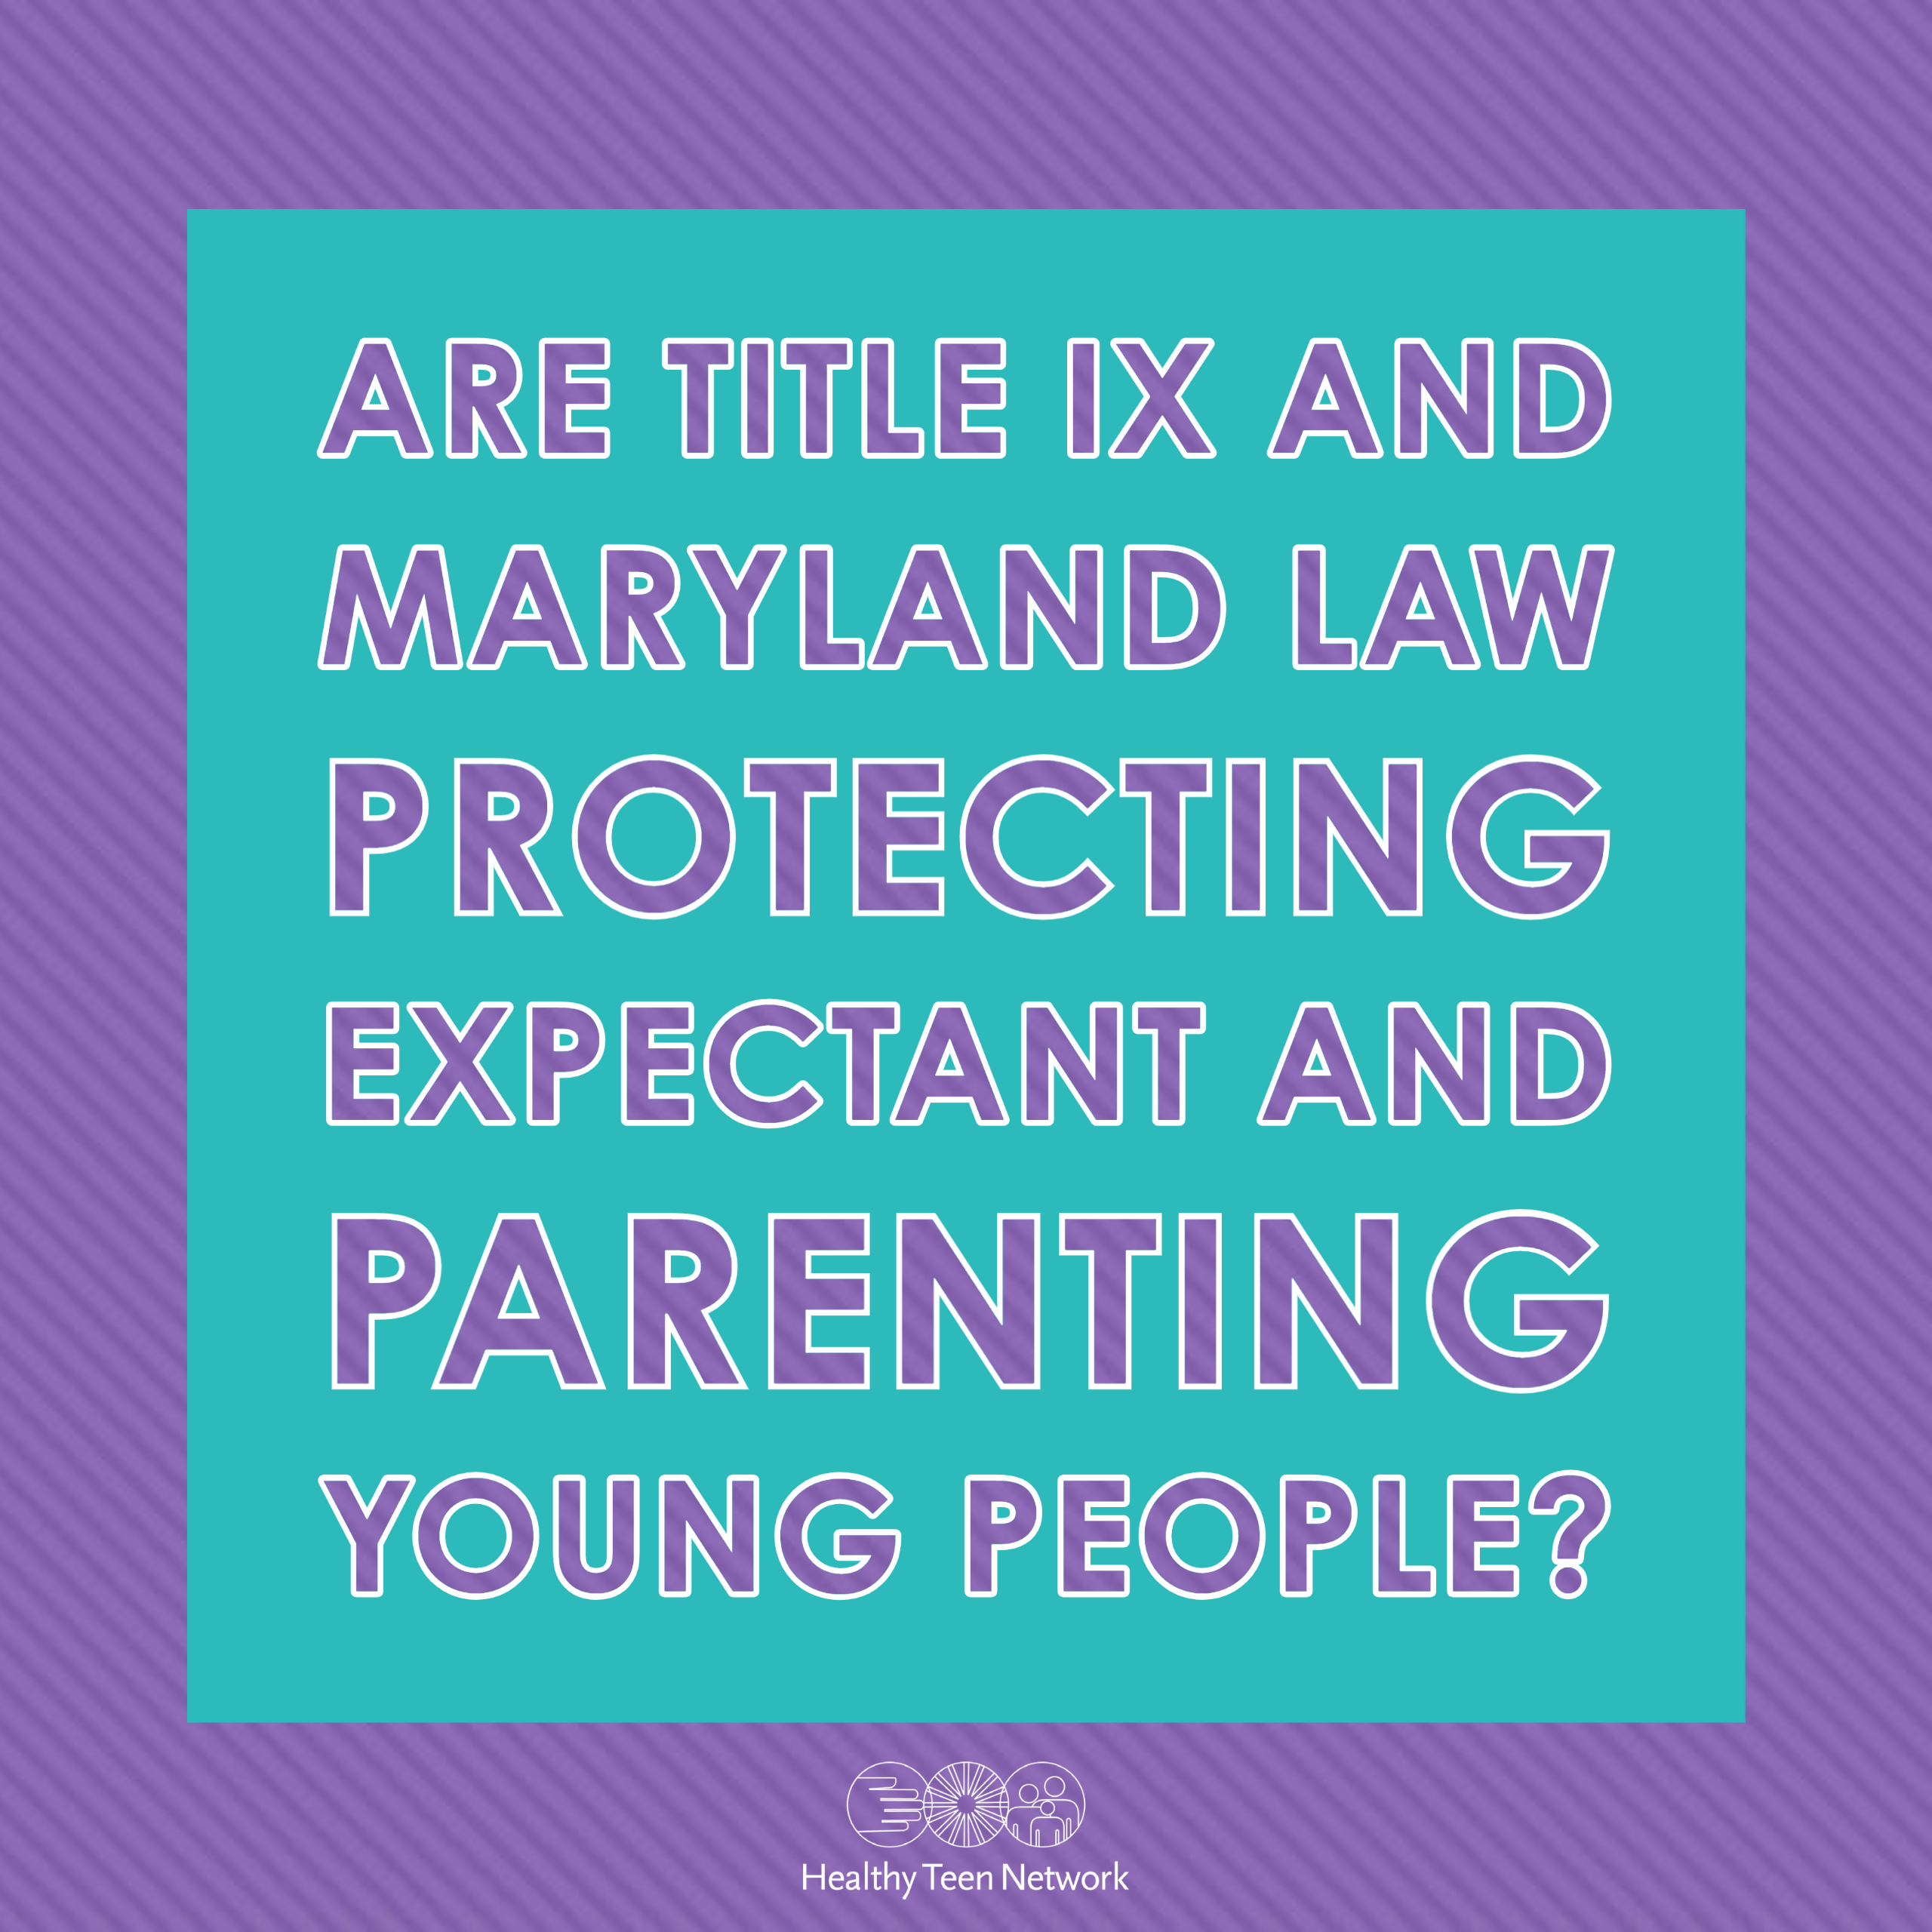 Are Title IX and Maryland Law Protecting Expectant and Parenting Young People?